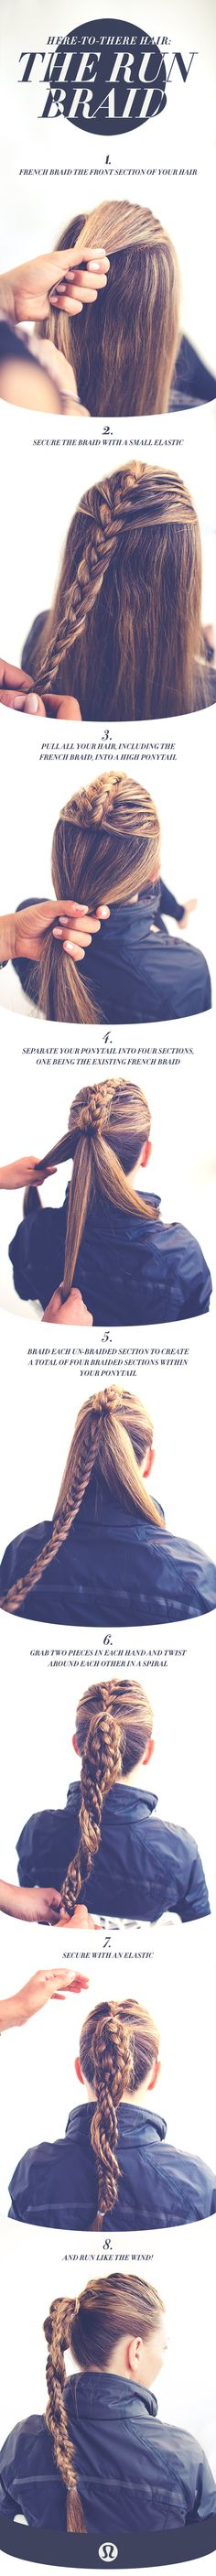 Here-to-there hair: Watch and learn how to create the perfect run braid